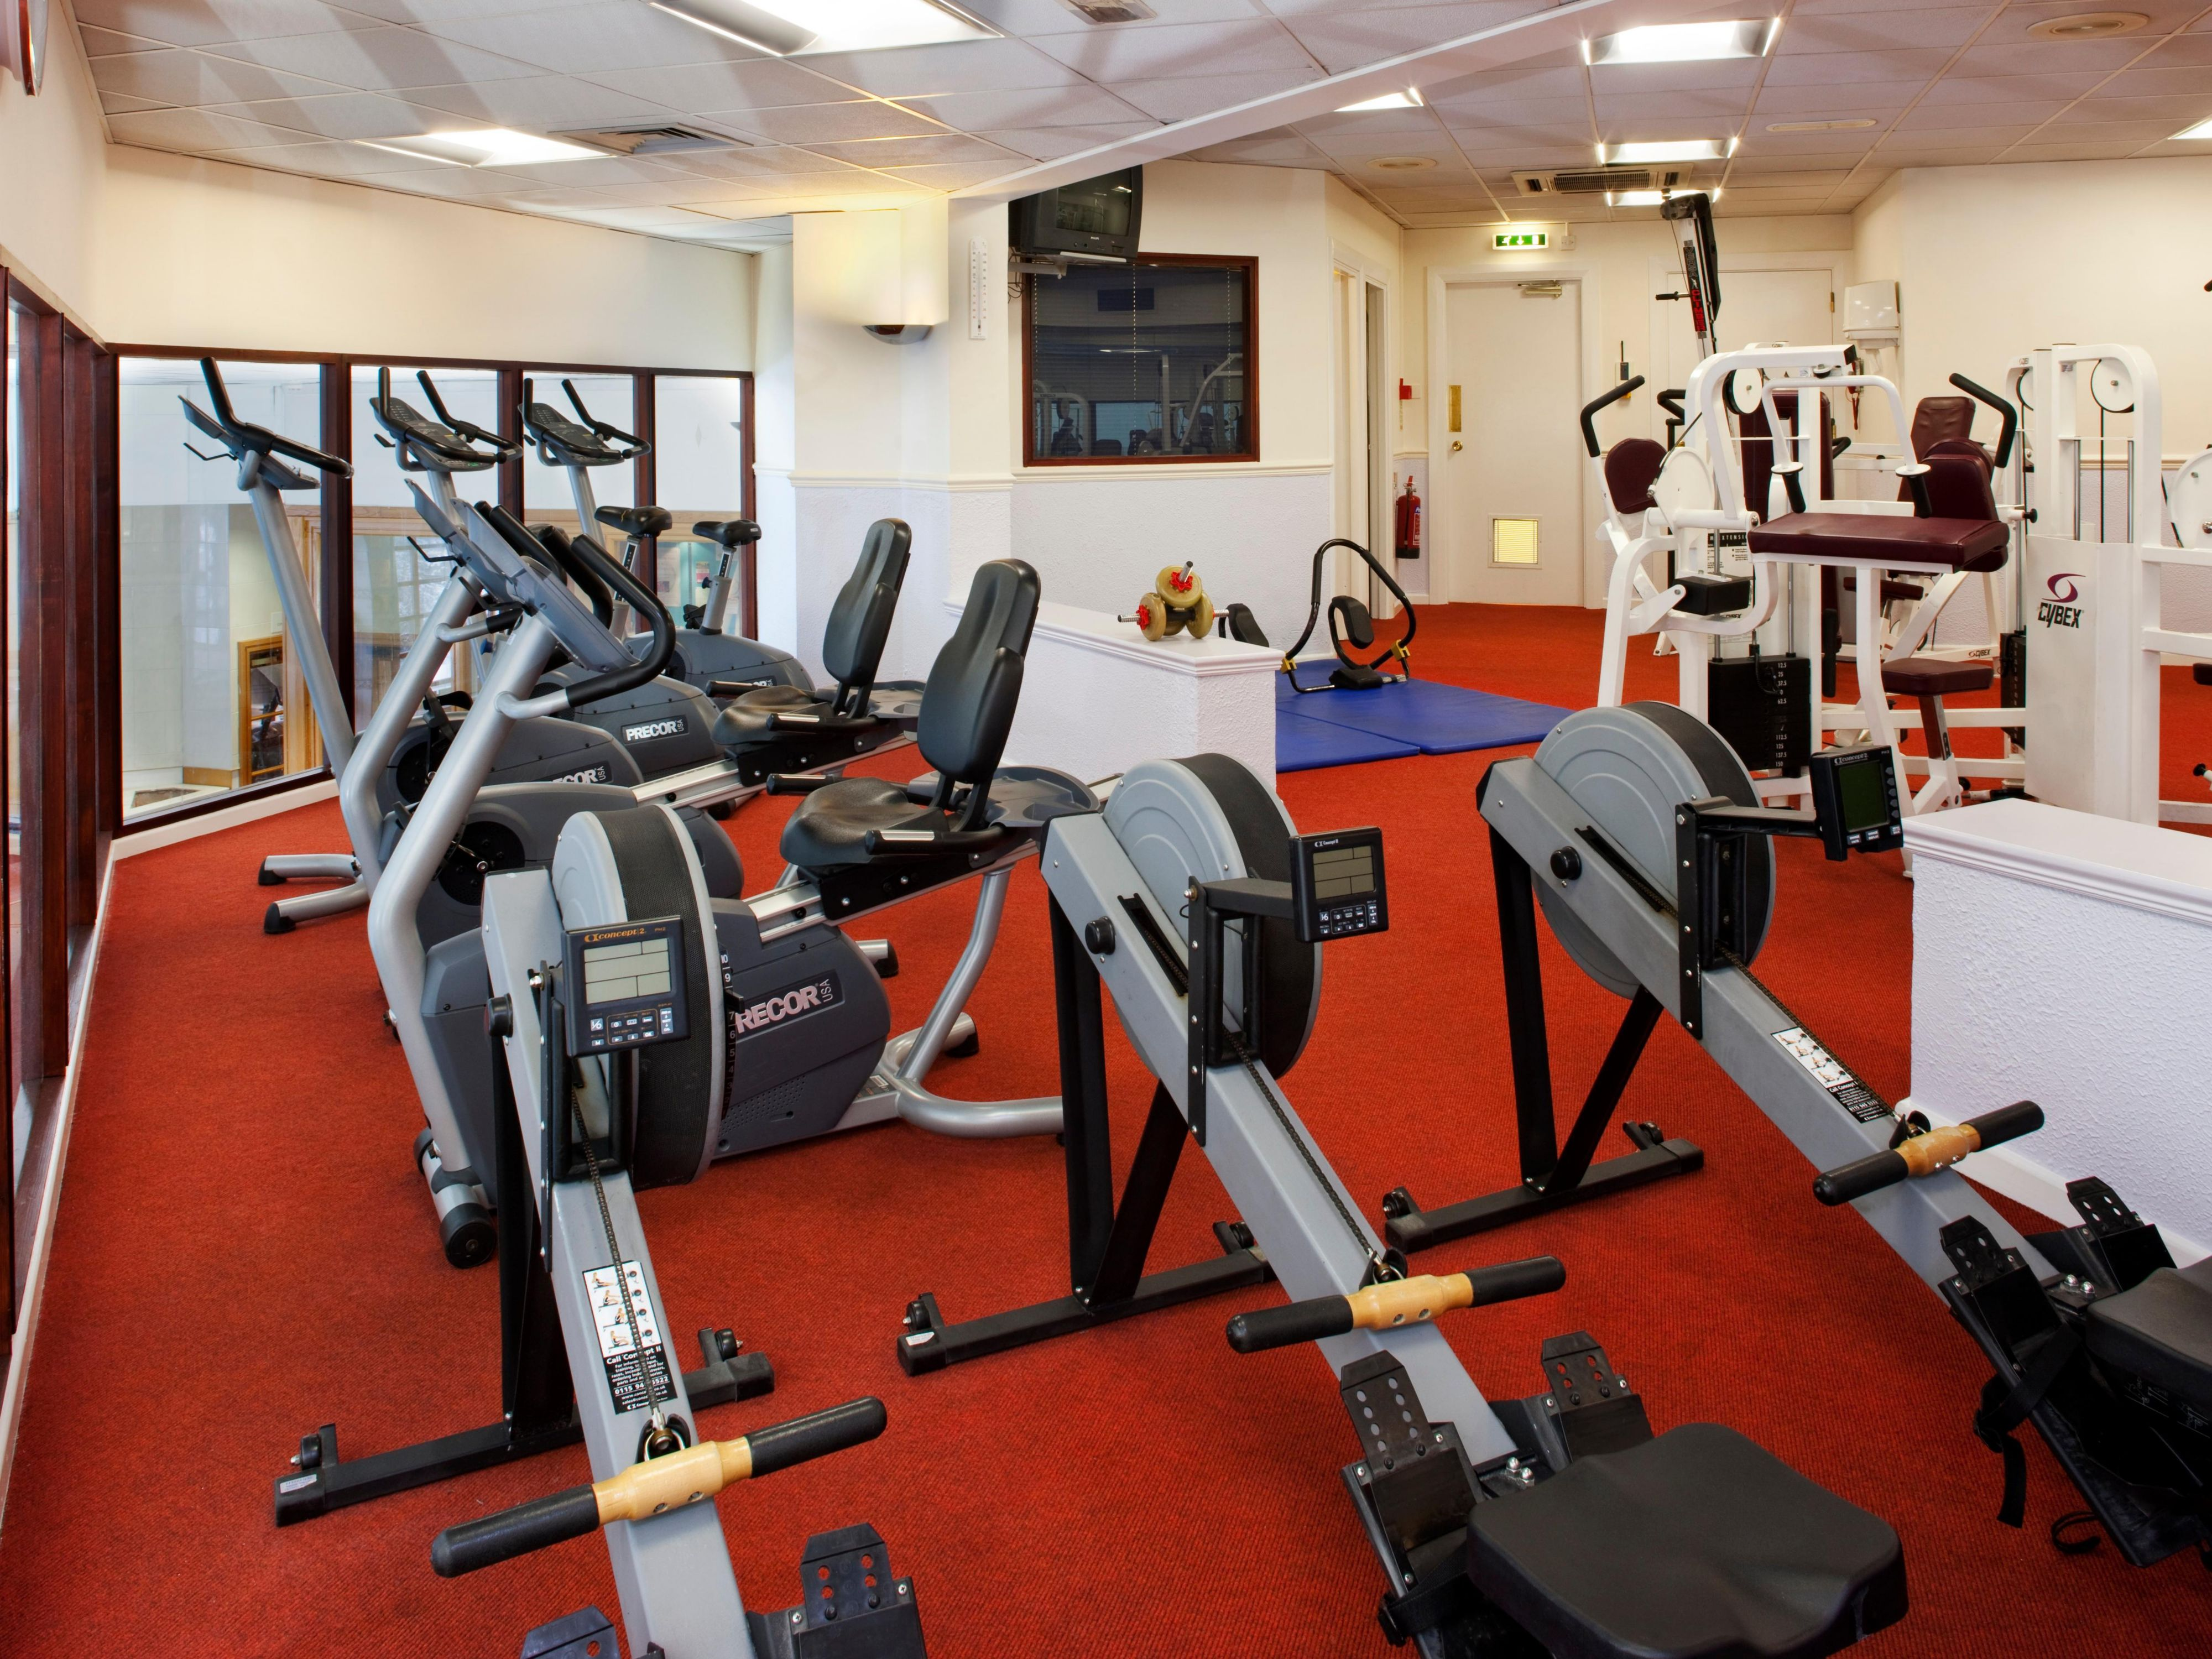 Gym Holiday Inn Solihull Club Moativation